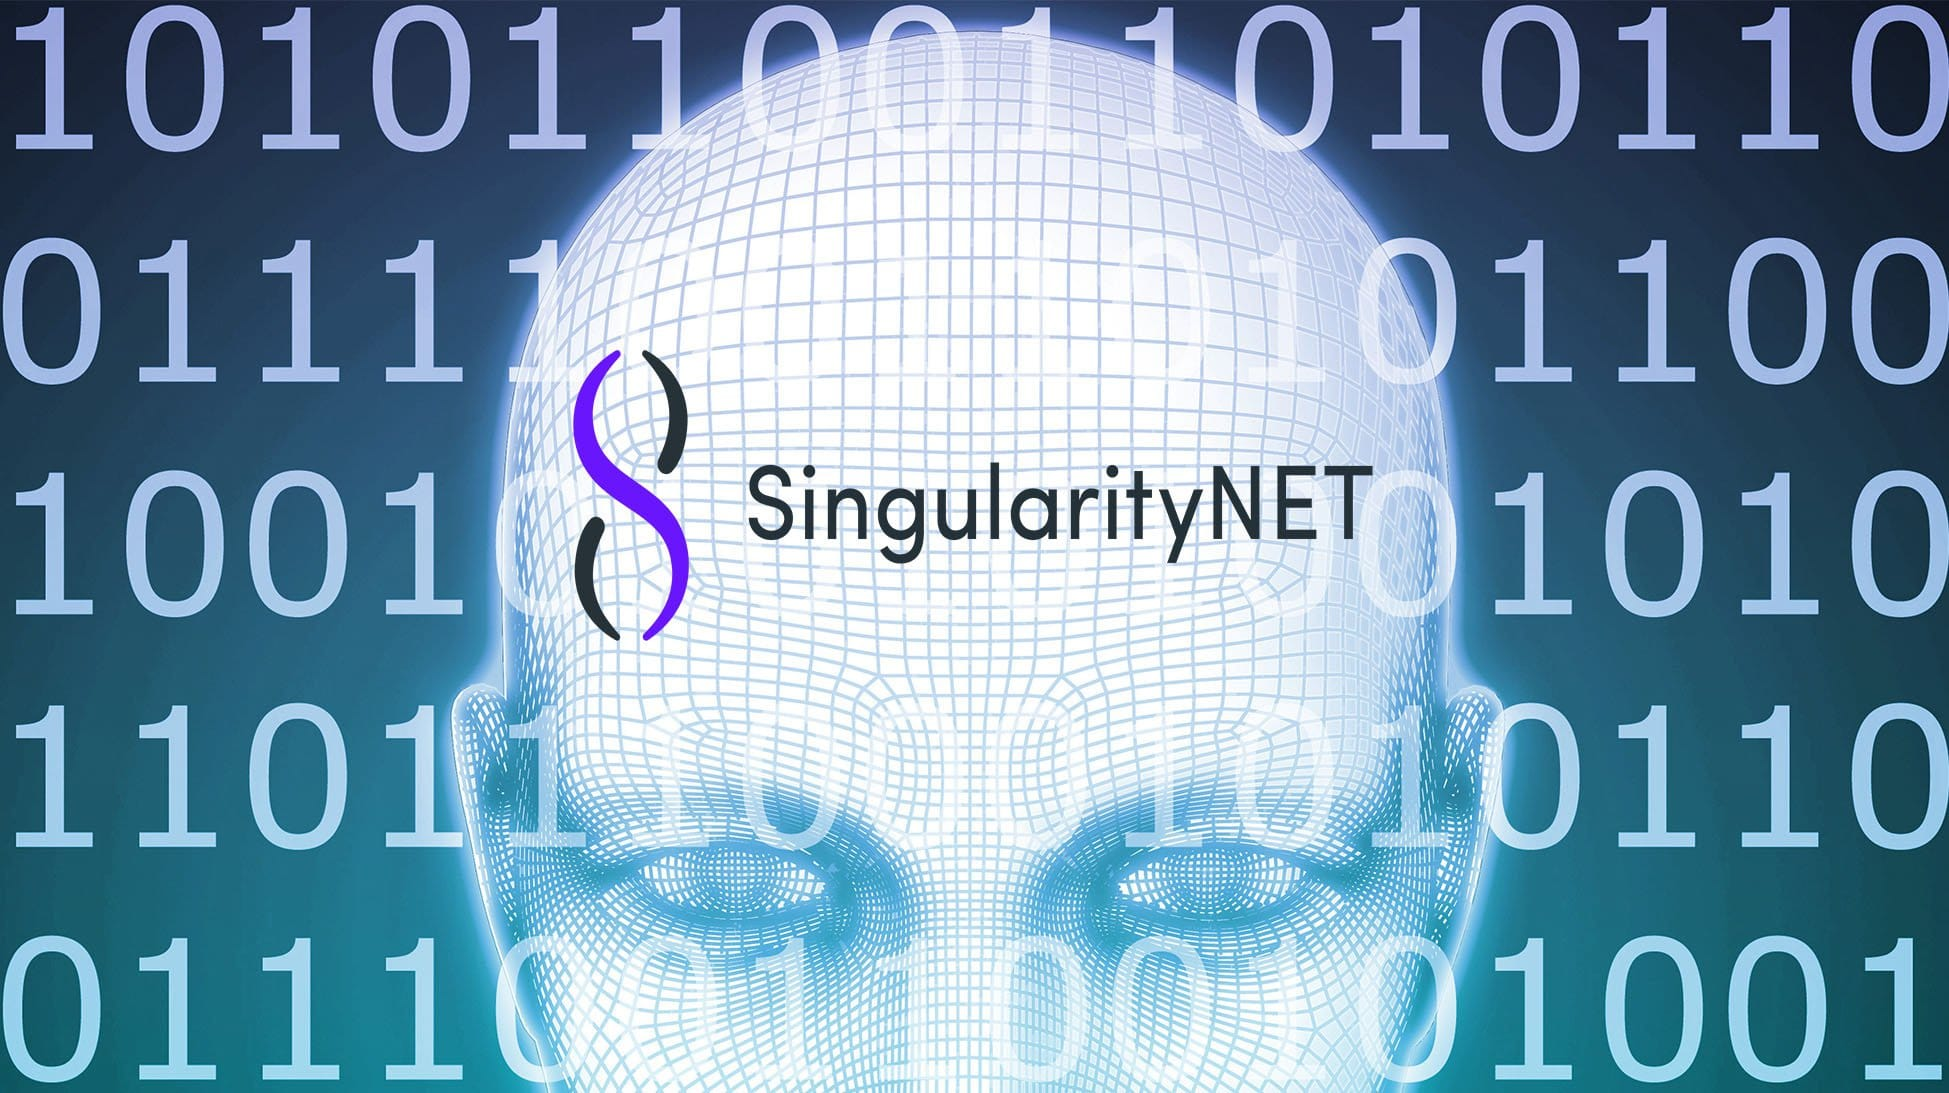 Blockchain AI Startup <bold>SingularityNET</bold> collaborates with China's Insurance Giant Ping An